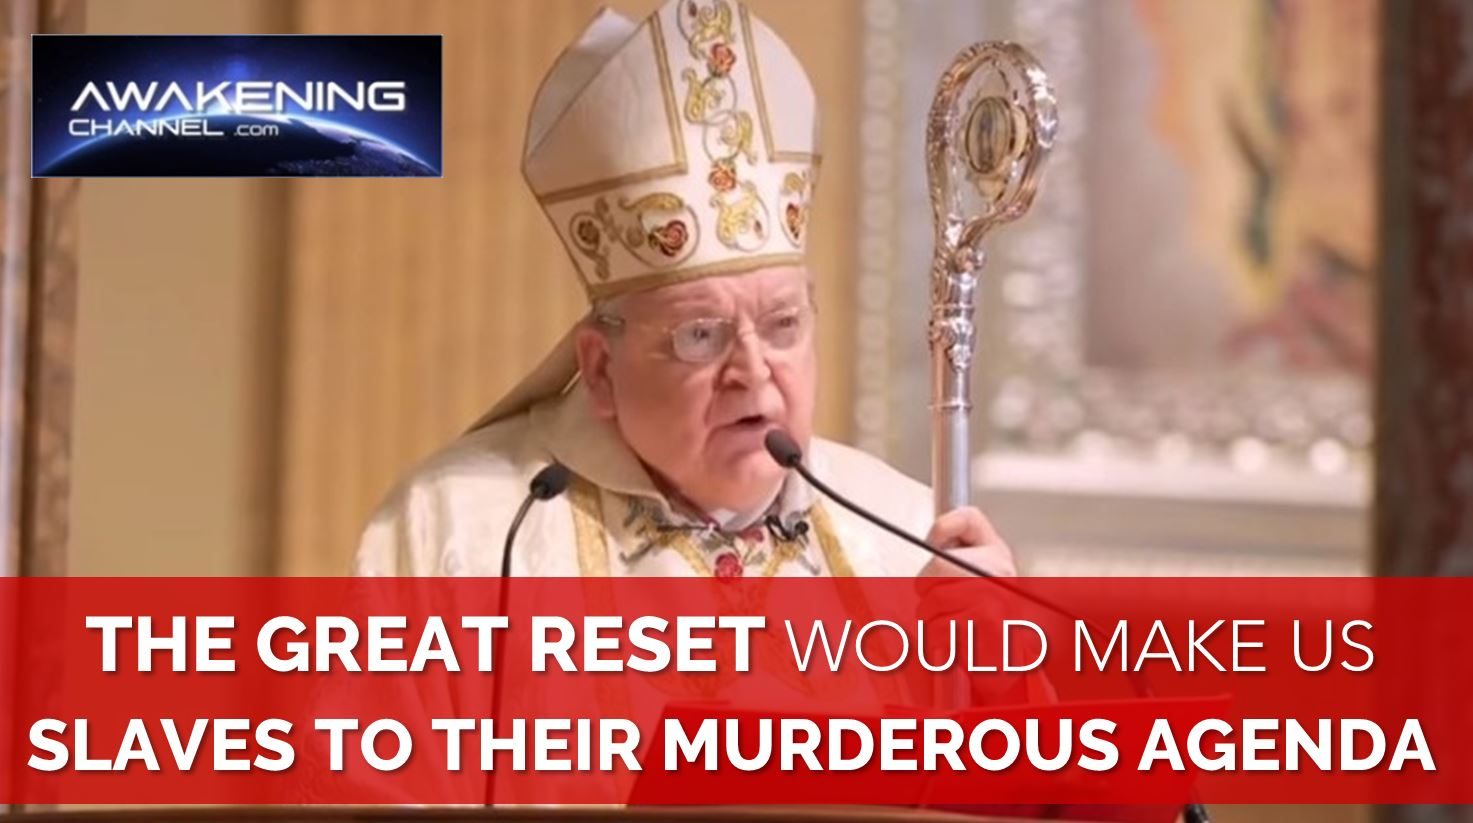 Cardinal: THE GREAT RESET, the new normal, a communist evil agenda, which would make us slaves to their murderous agenda